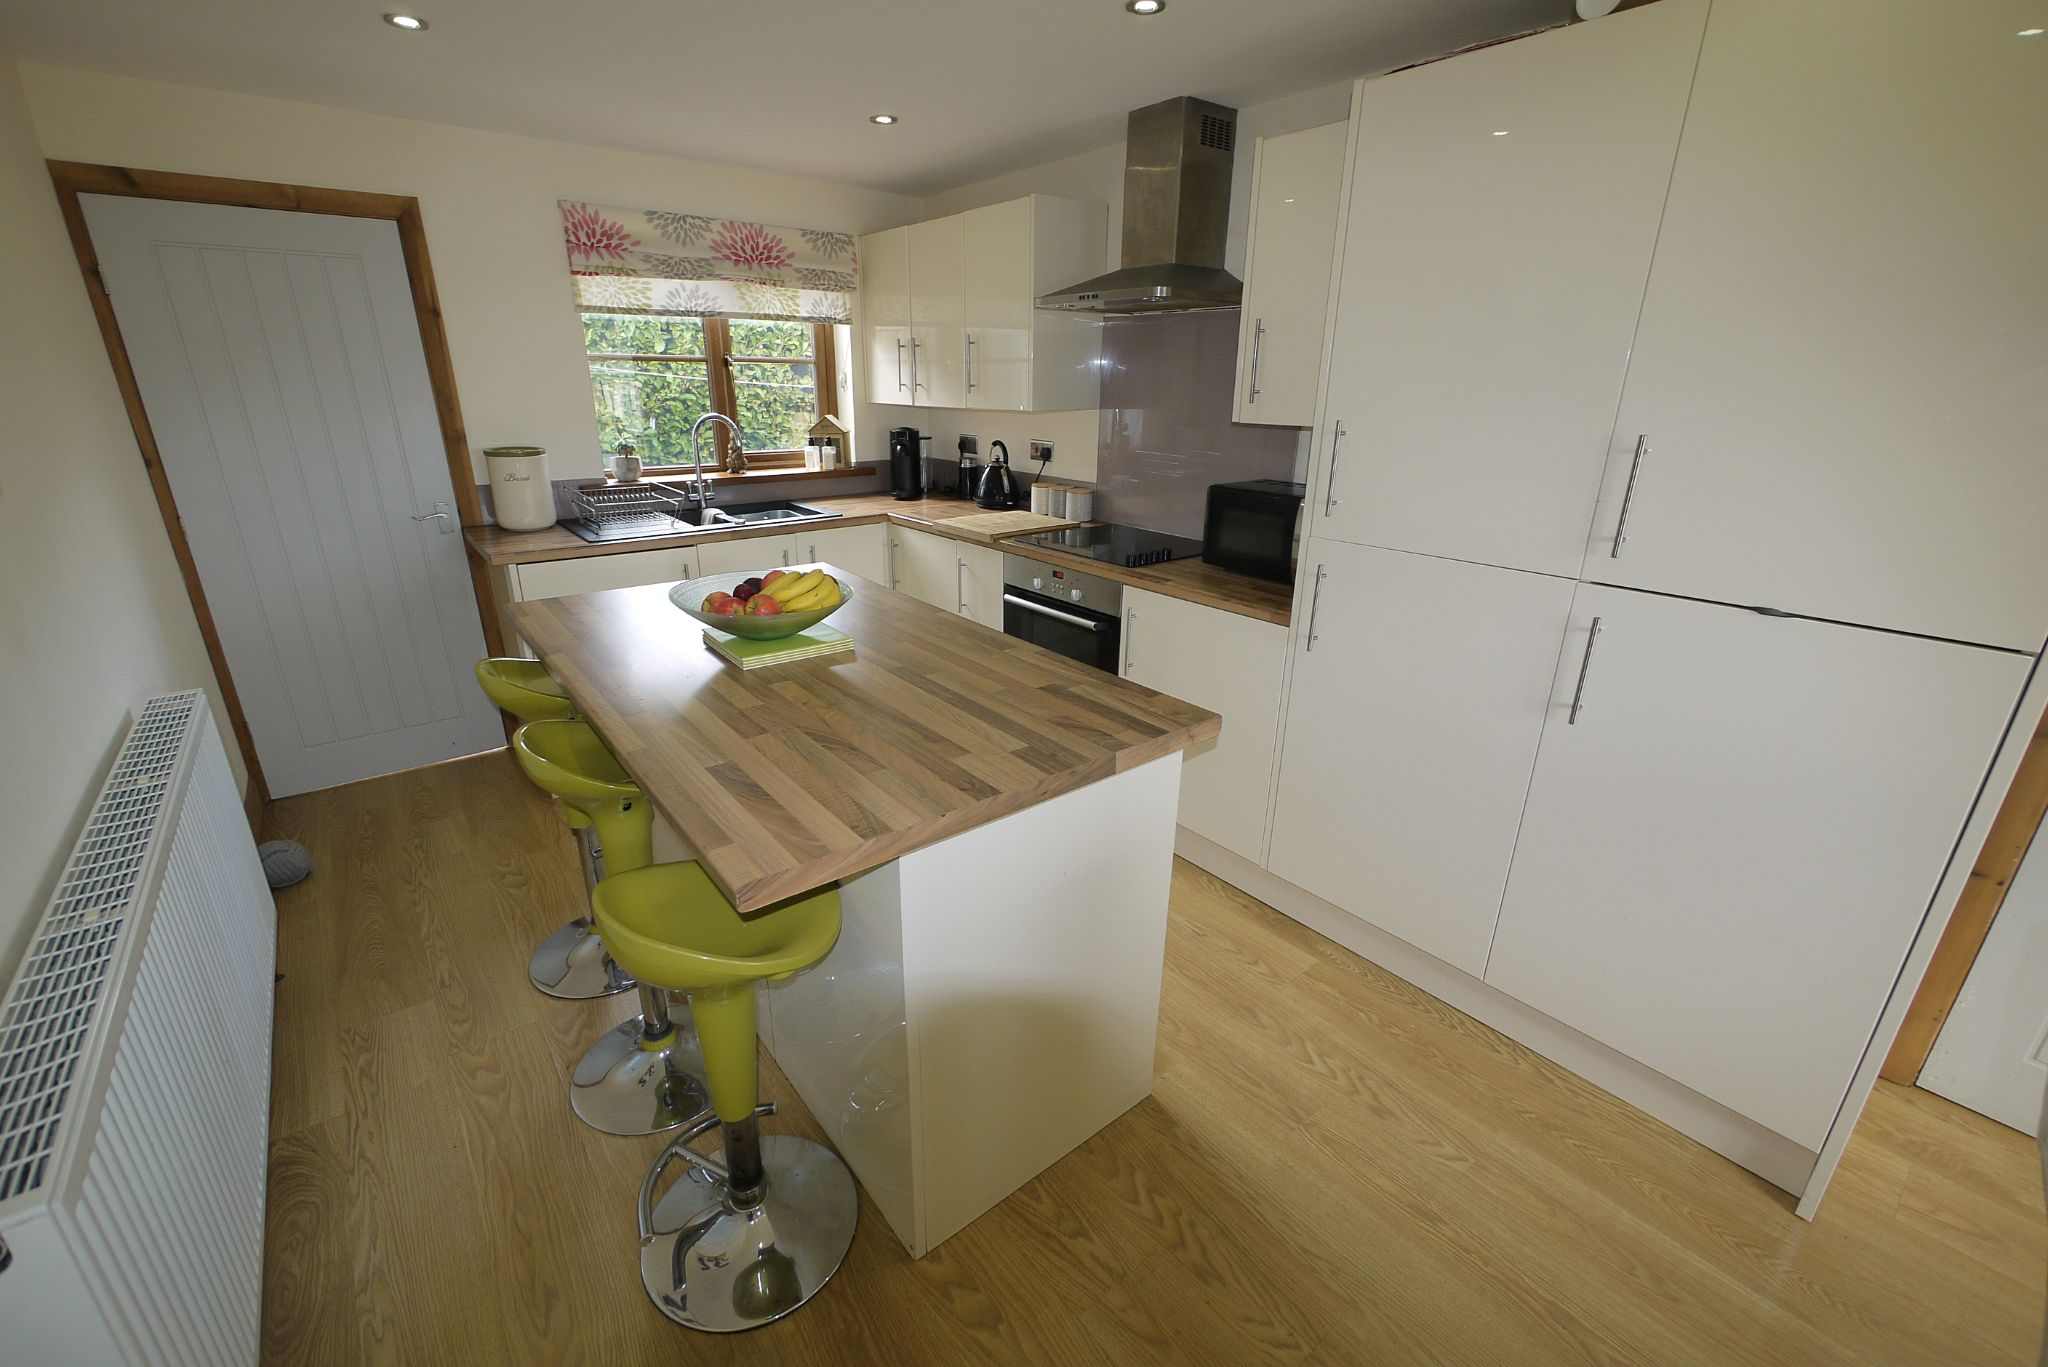 4 bedroom detached house SSTC in Brighouse - Dining Kit 2.